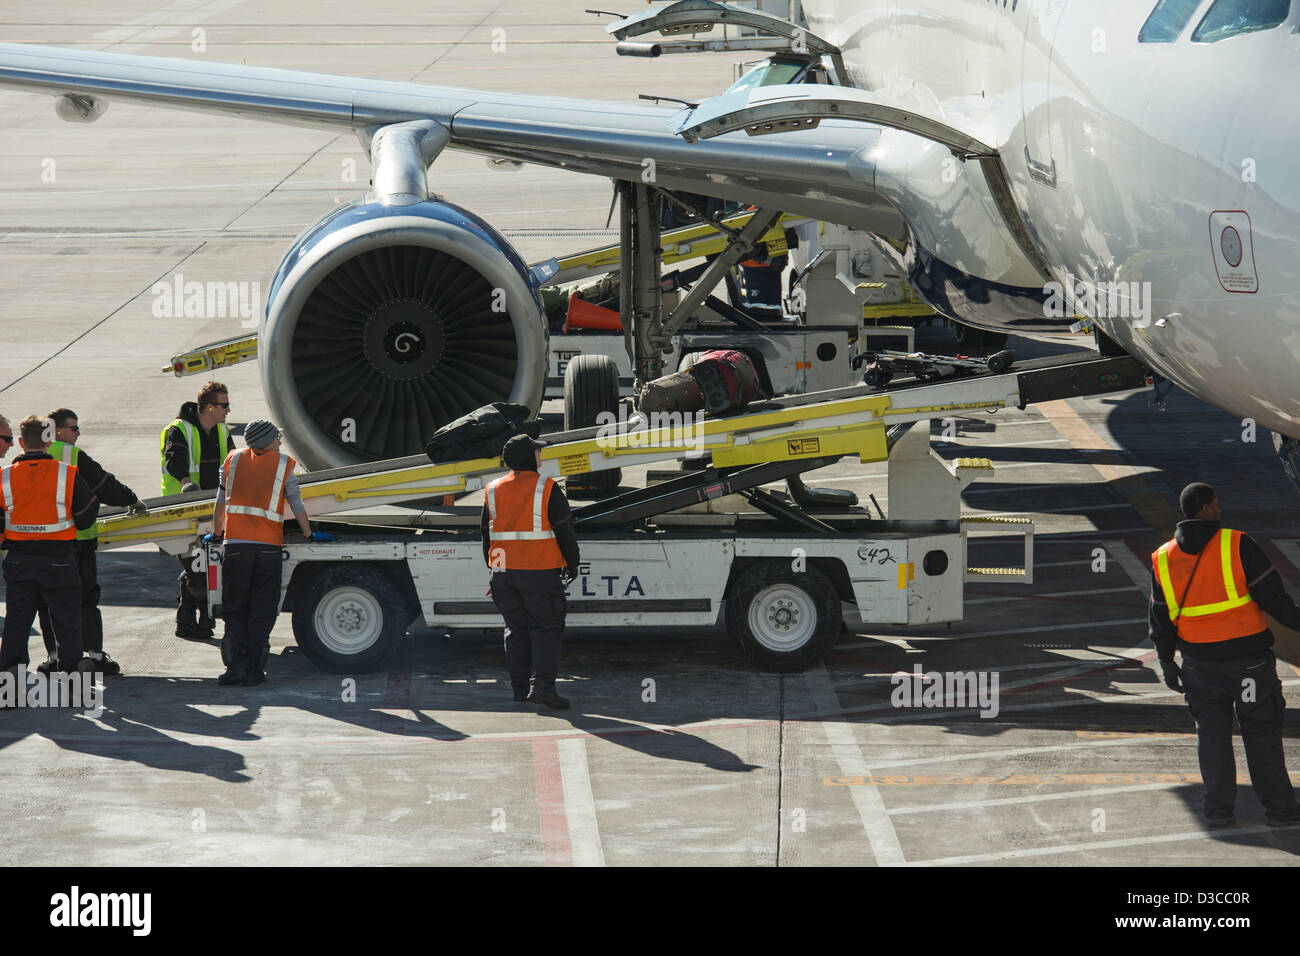 Denver, Colorado   The Ground Crew Unloads Luggage From A Delta Airlines  Plane At Denver